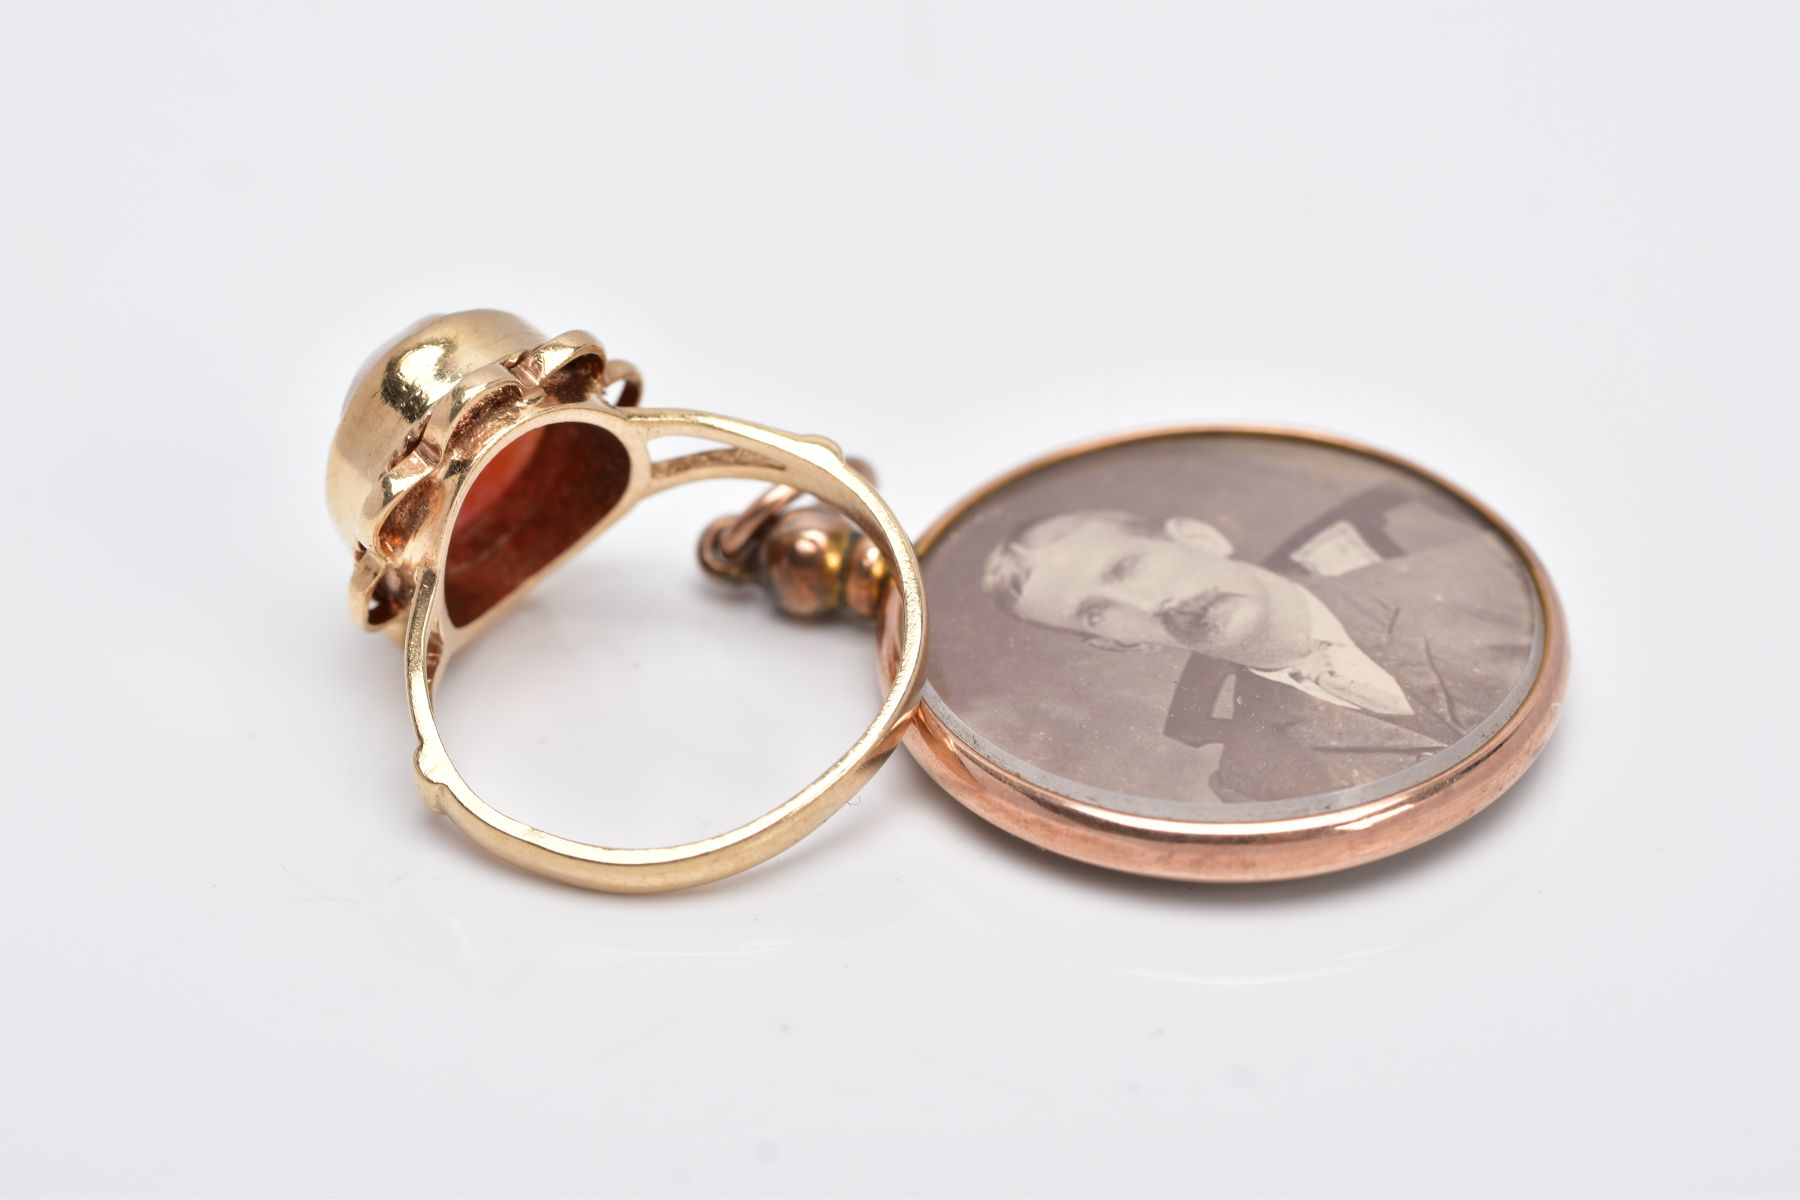 A 9CT GOLD CAMEO RING AND A DOUBLE SIDED PHOTOGRAPH, of an oval form, depicting a lady in profile, - Image 3 of 4